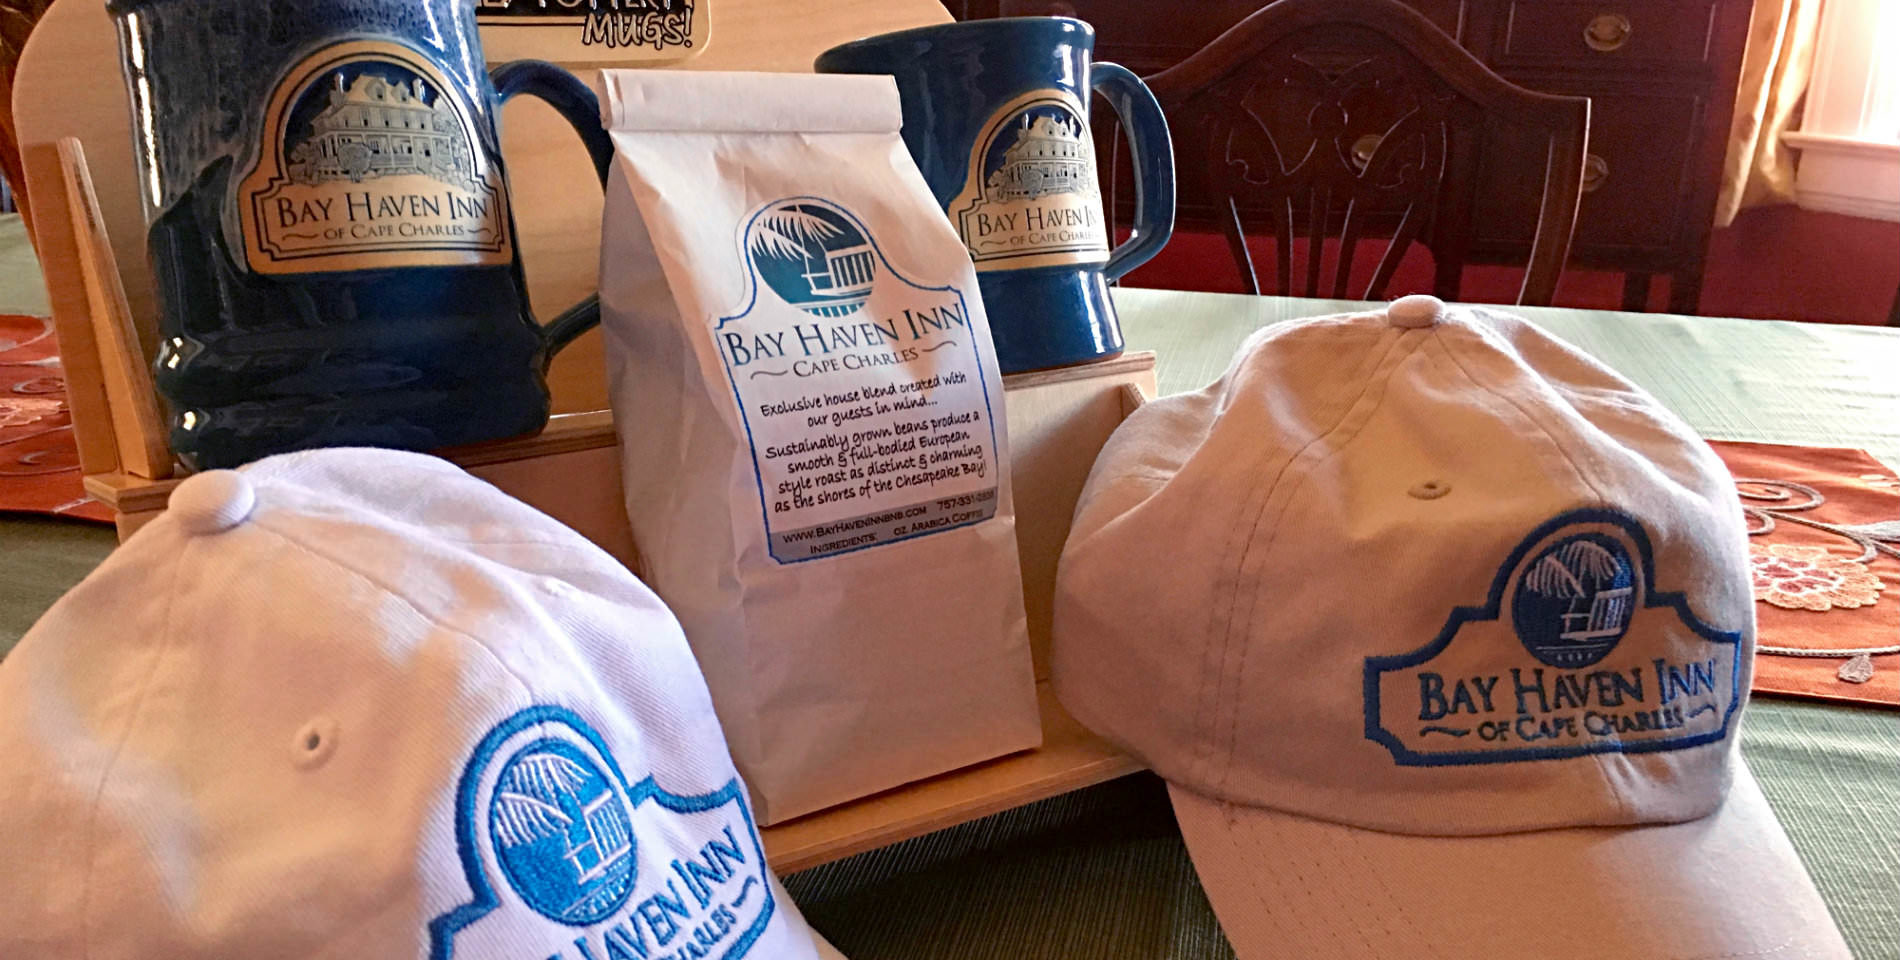 White hats, blue mugs and white bags of coffee with the text: Bay Haven Inn, Cape Charles.